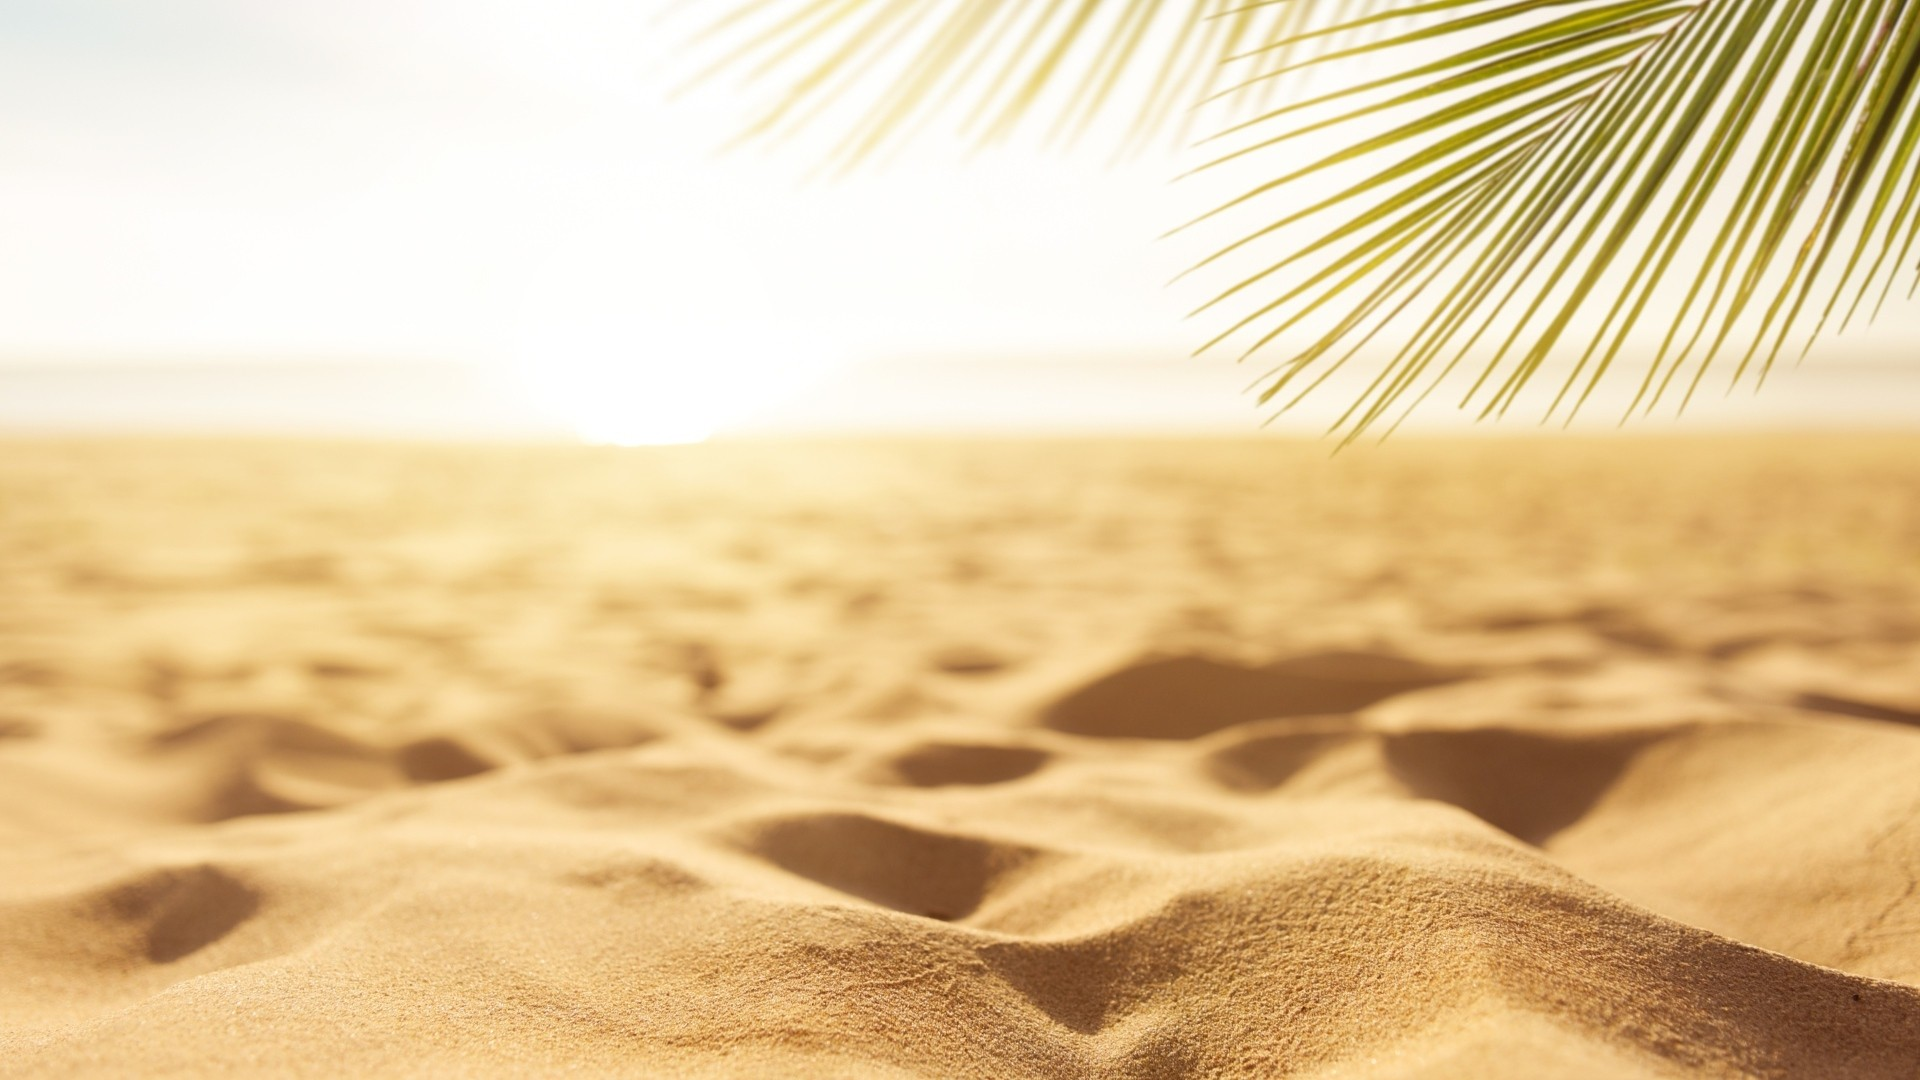 Sand wallpaper for computer